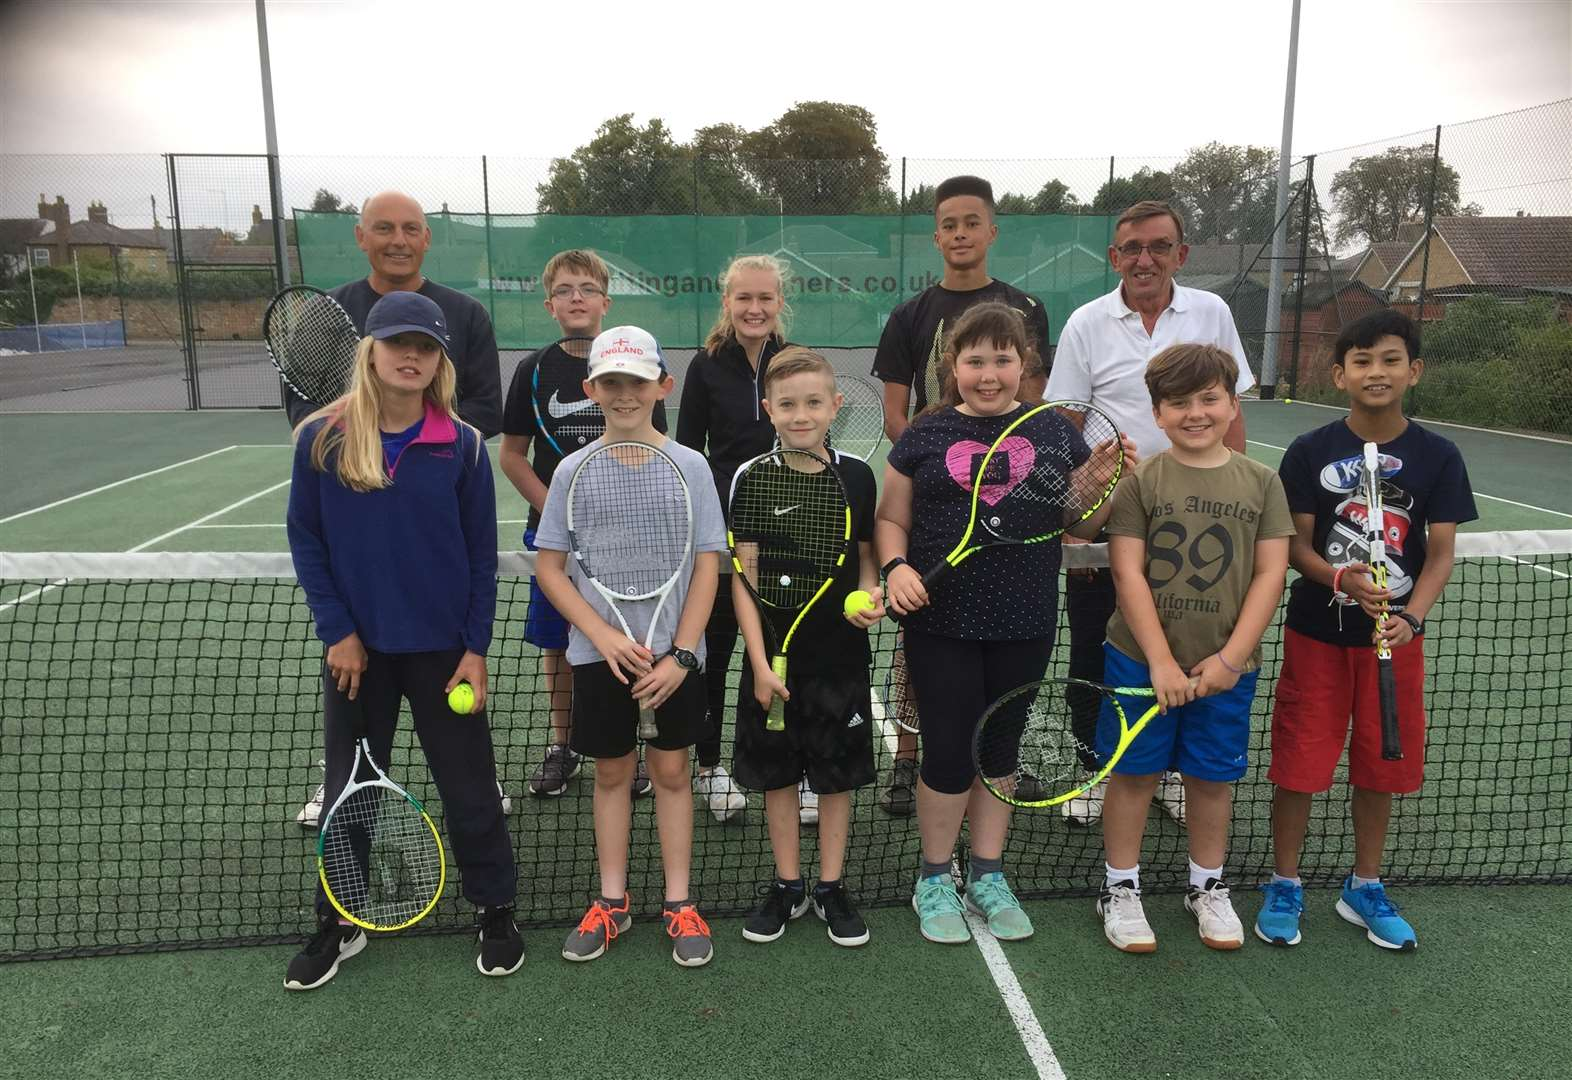 Chatteris club treats its junior tennis members